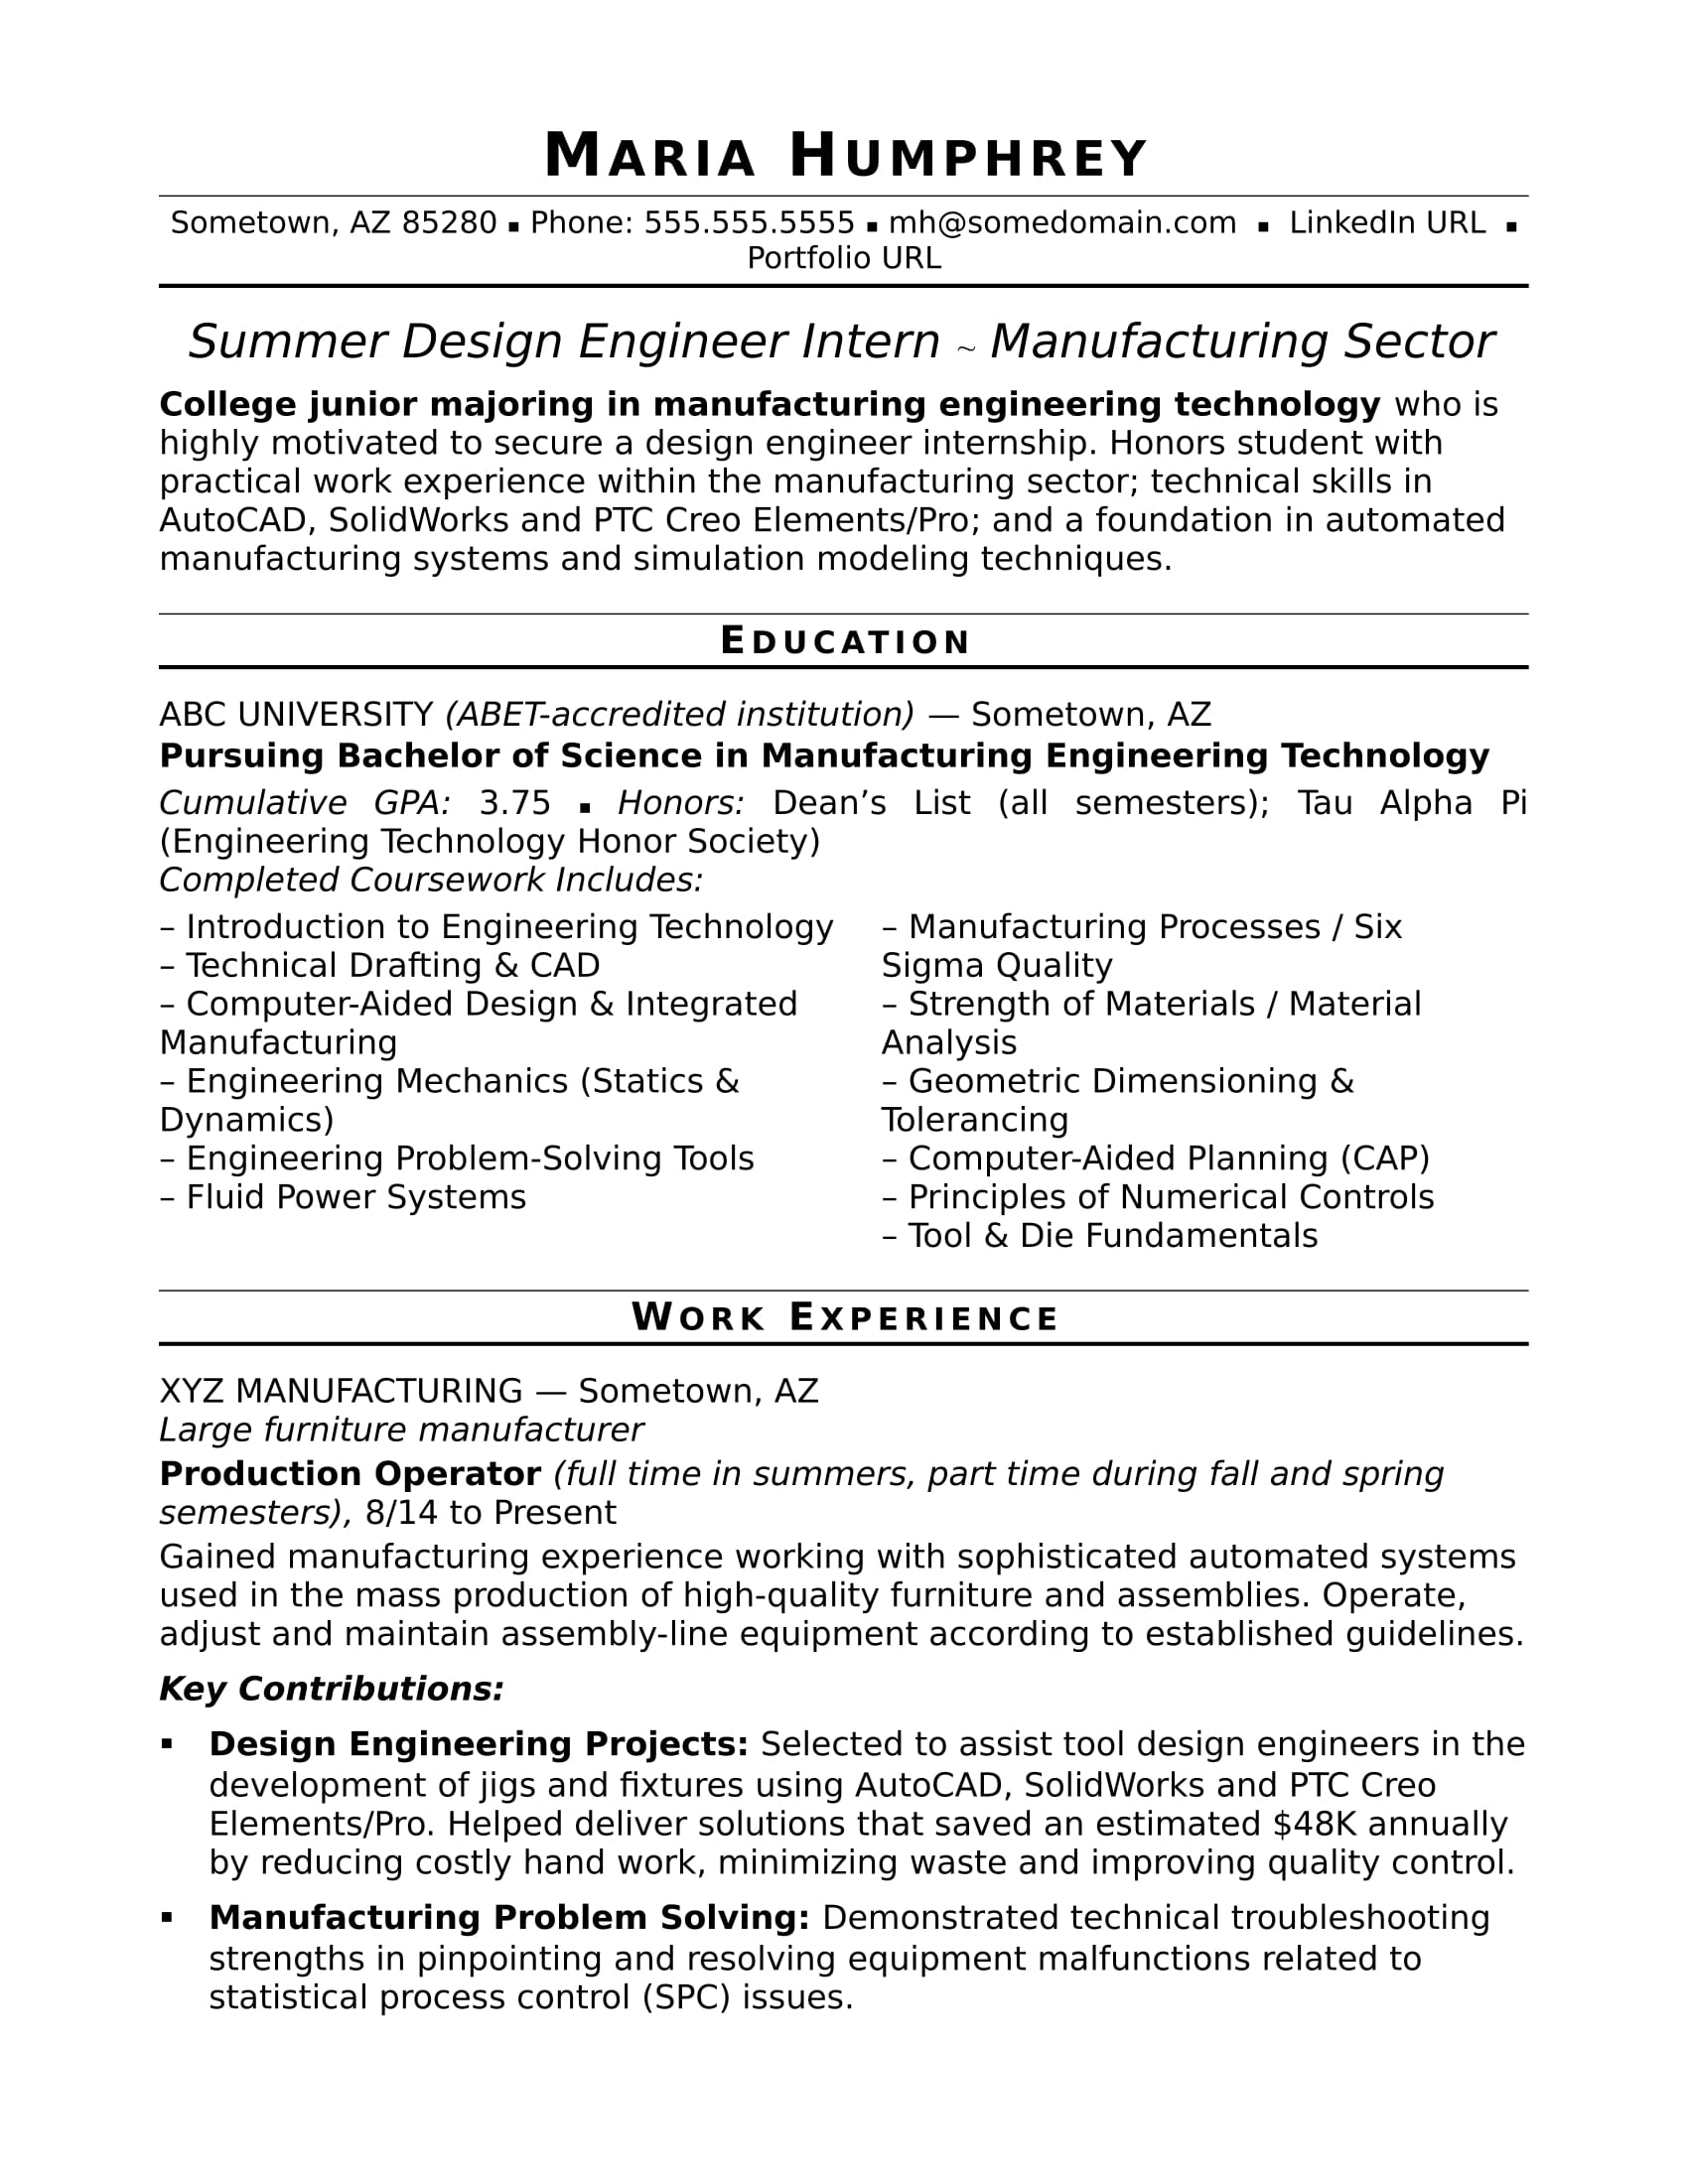 sample resume for an entry level design engineer - Manufacturing Engineer Sample Resume